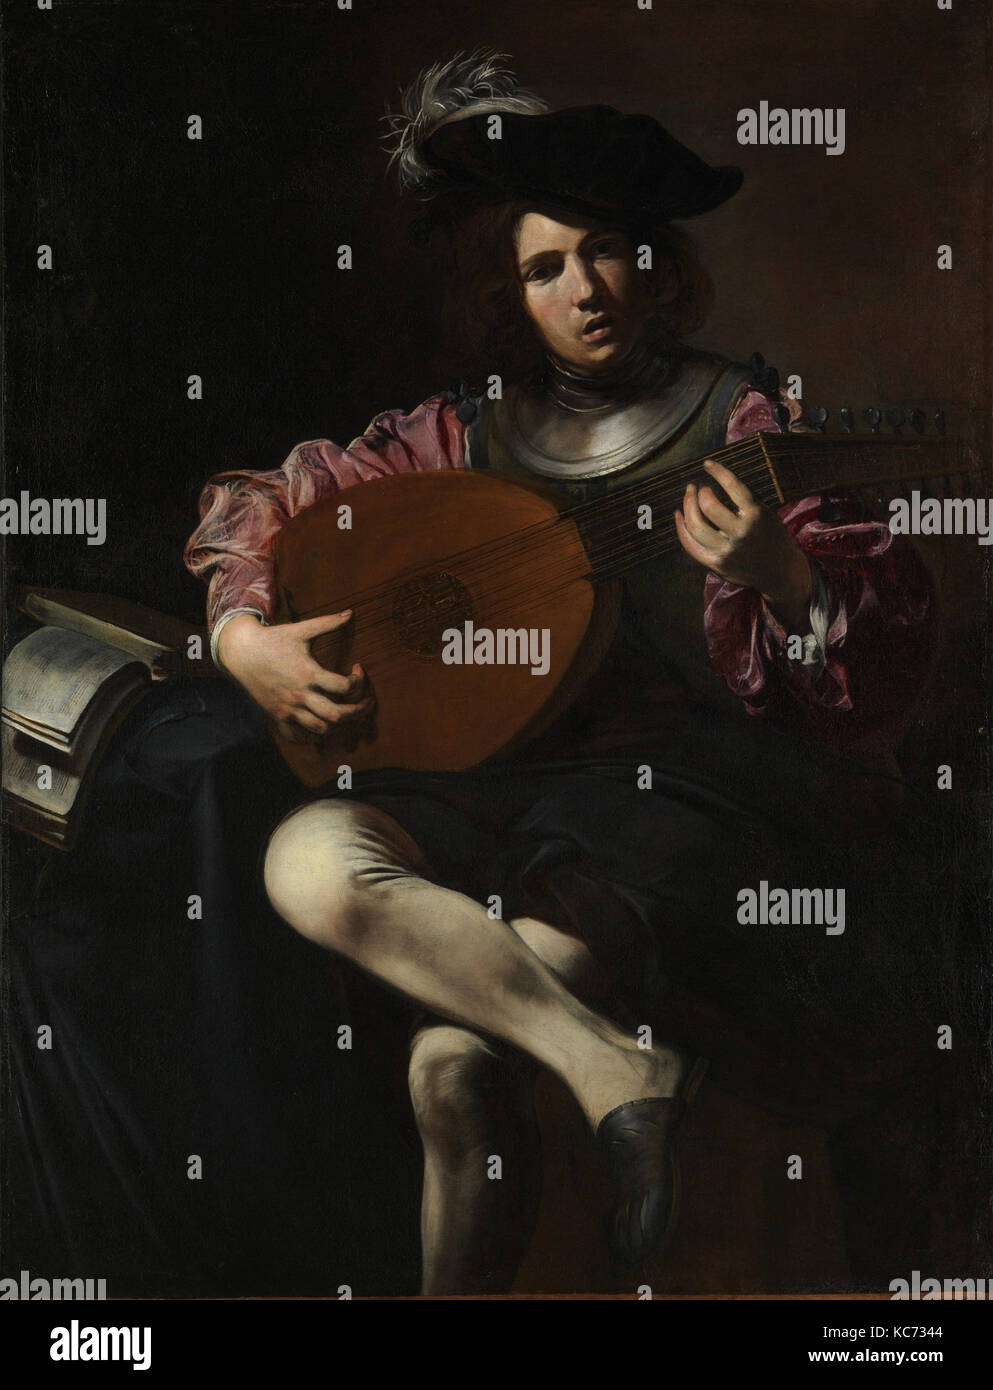 Lute Player, ca. 1625–26, Oil on canvas, 50 1/2 x 39 in. (128.3 x 99.1 cm), Paintings, Valentin de Boulogne (French, - Stock Image